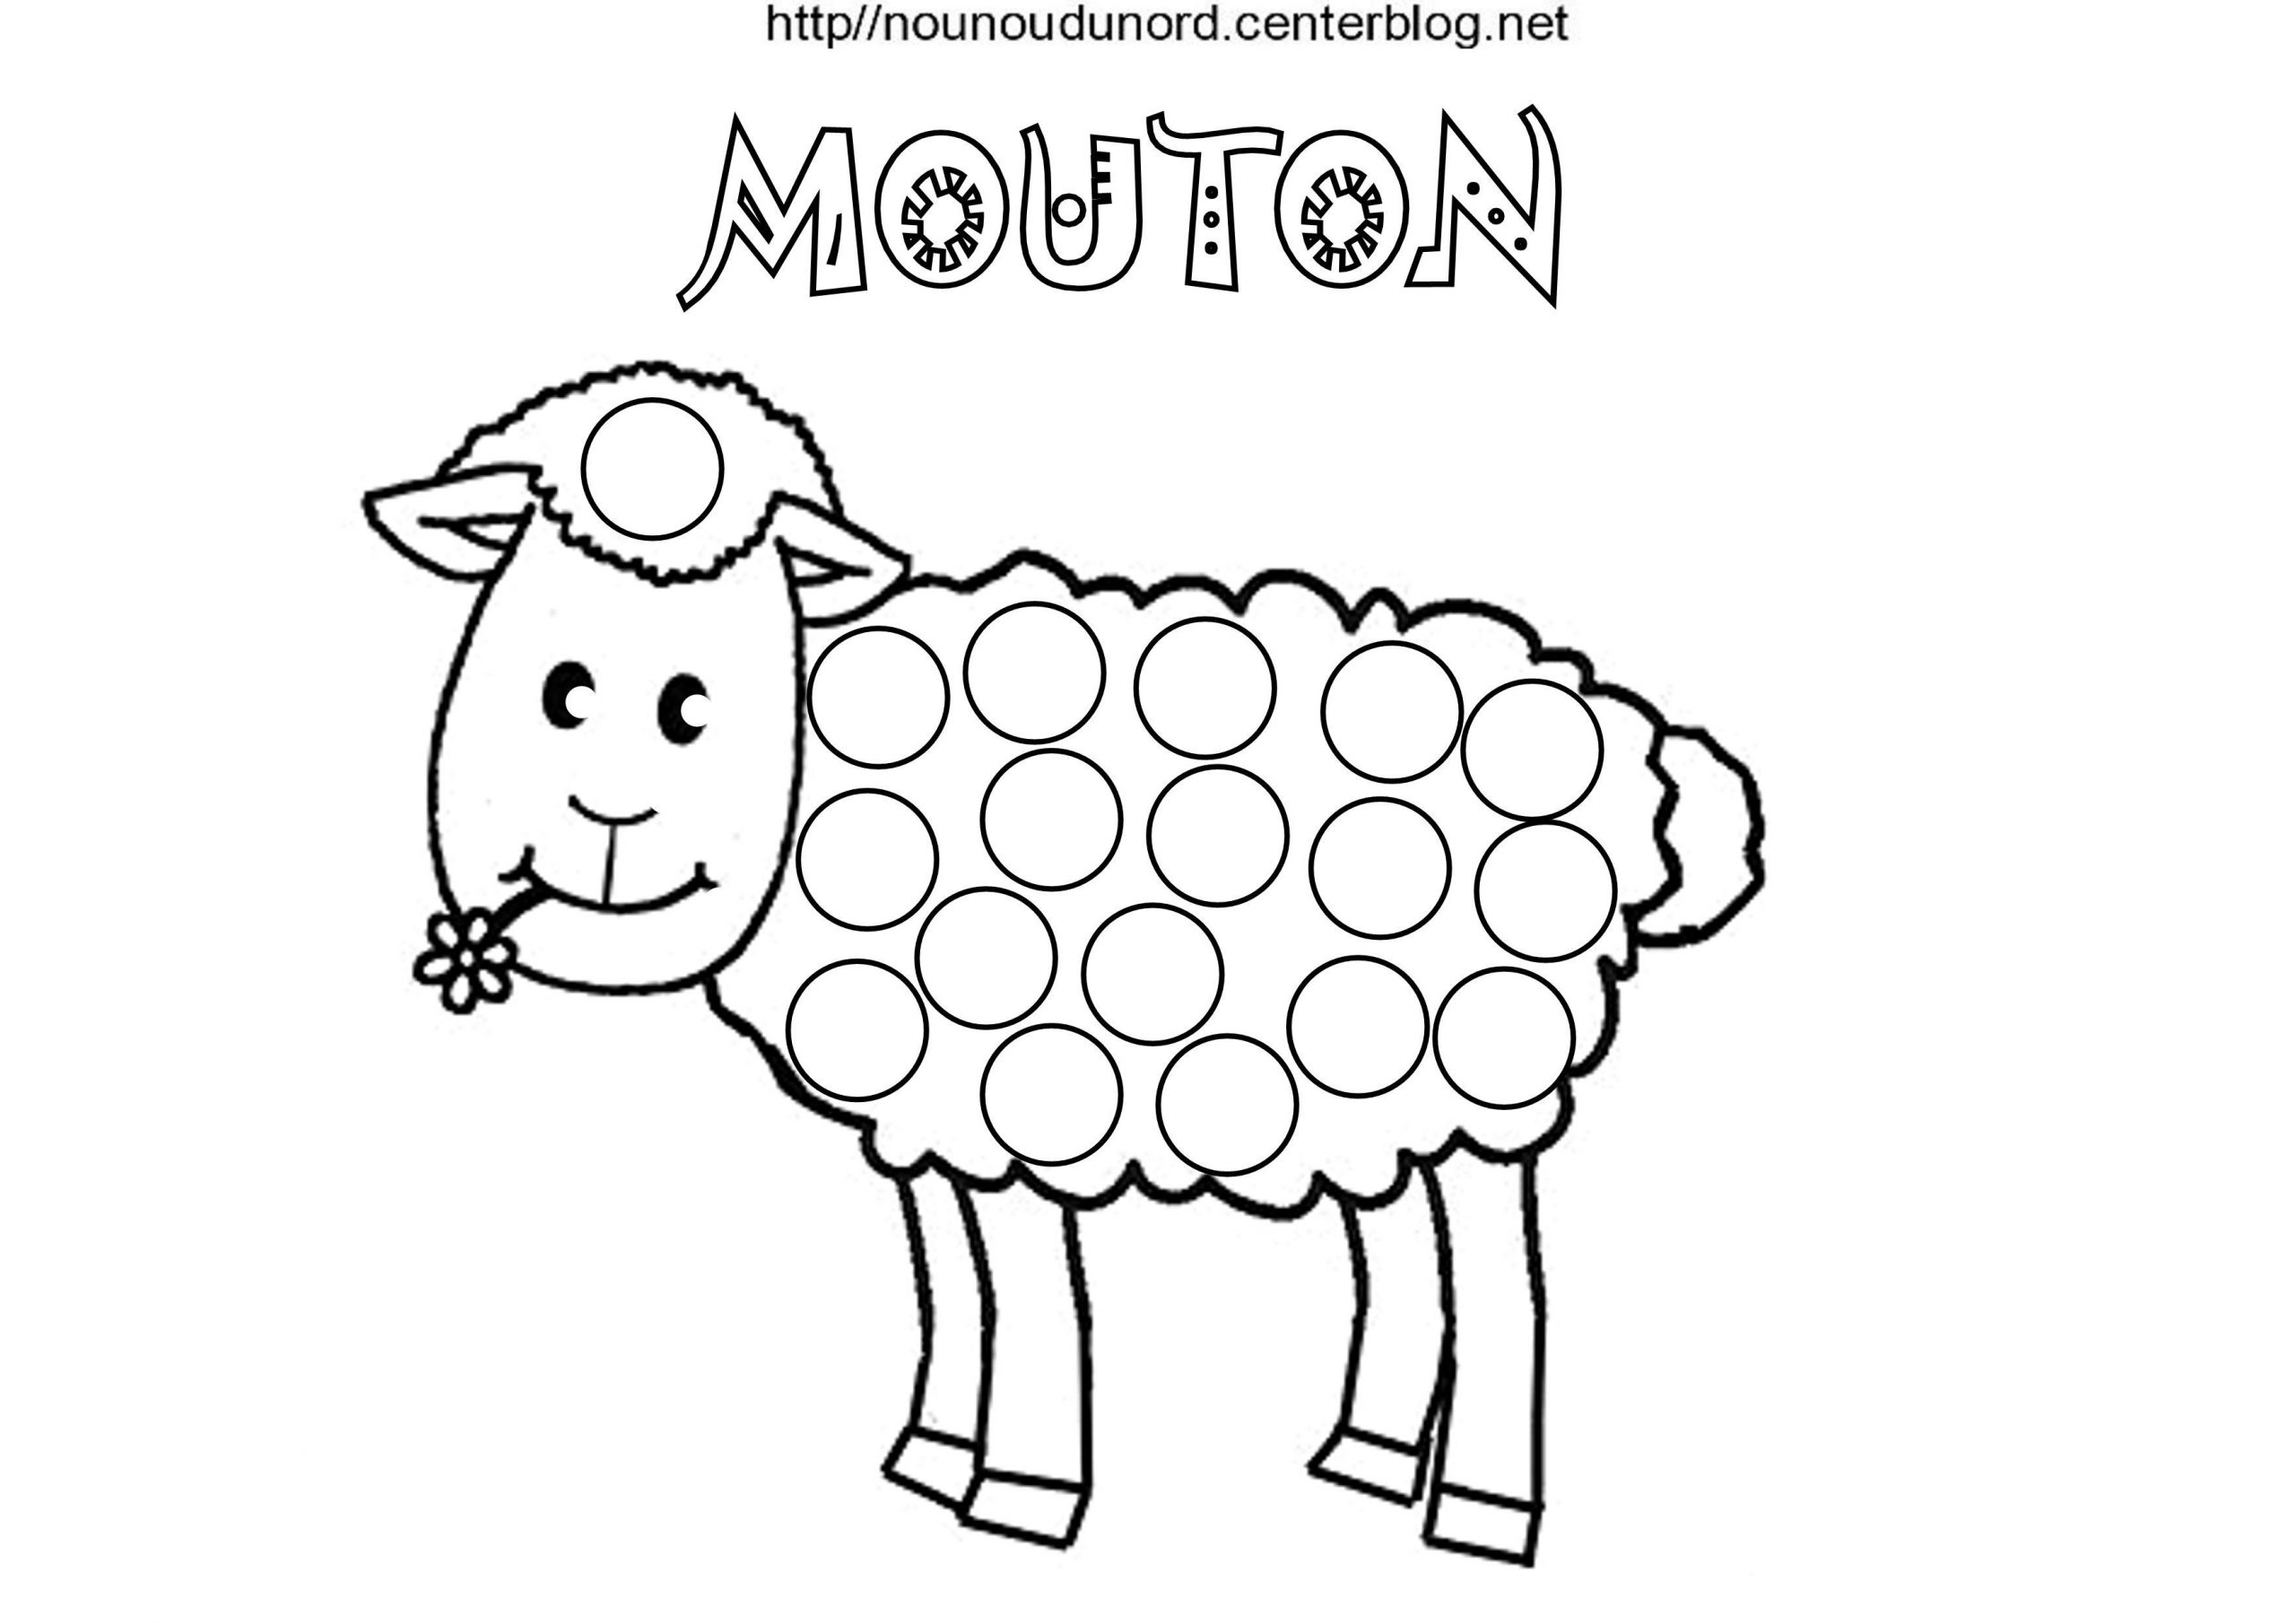 Mouton Coloriage Et Gommettes En Couleur destiné Photo De Mouton A Imprimer